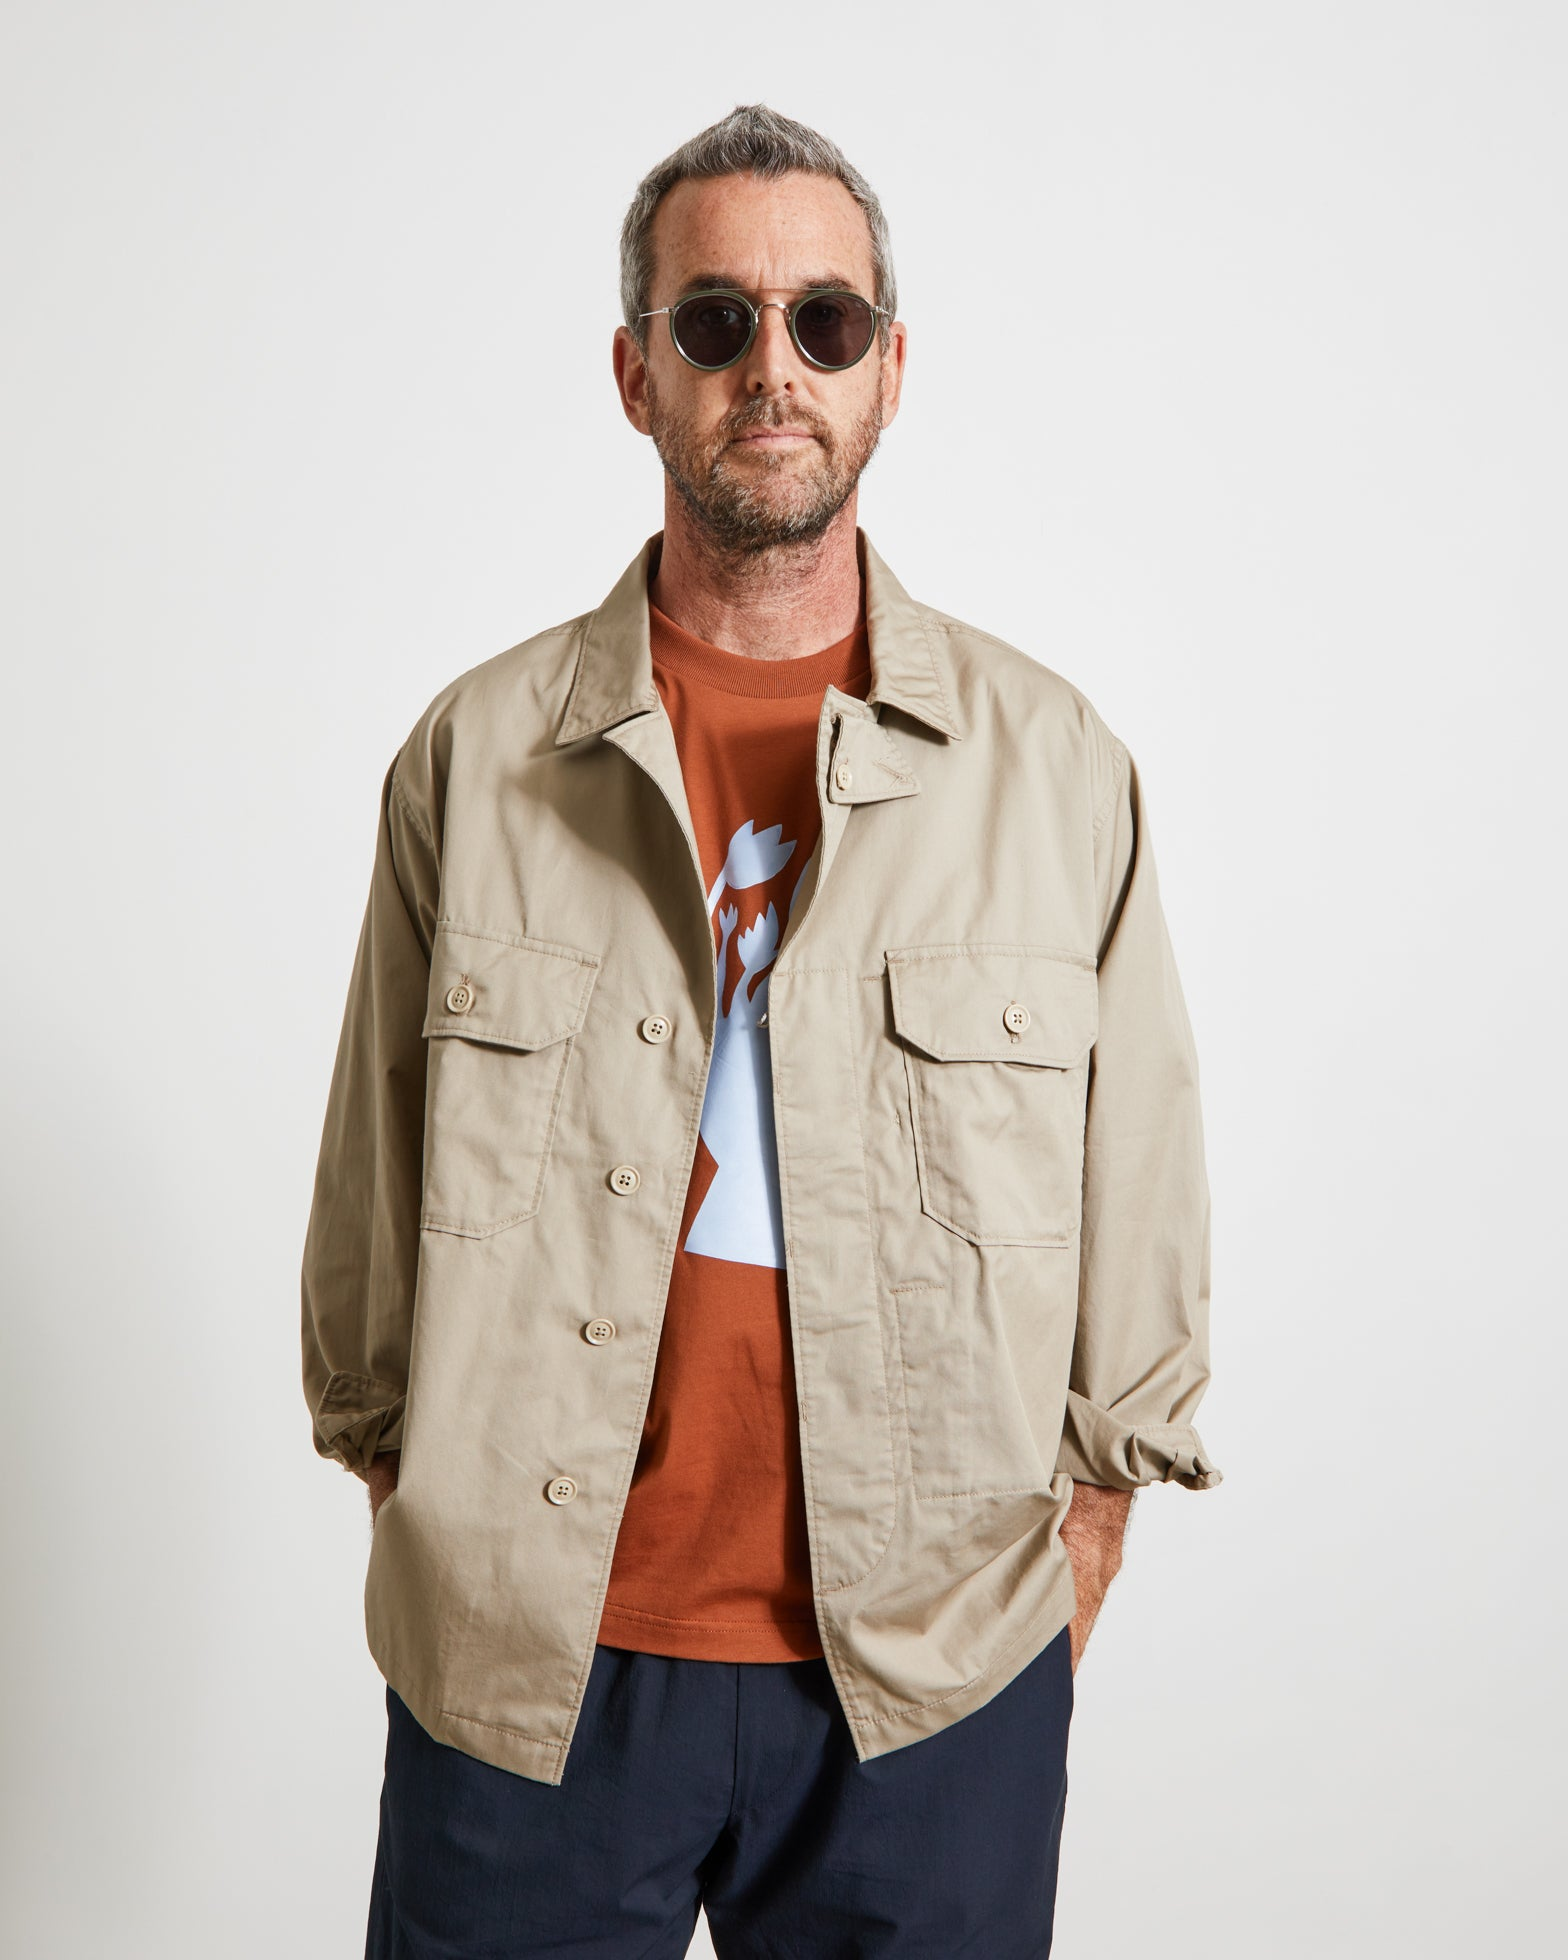 MC Shirt Jacket in Khaki